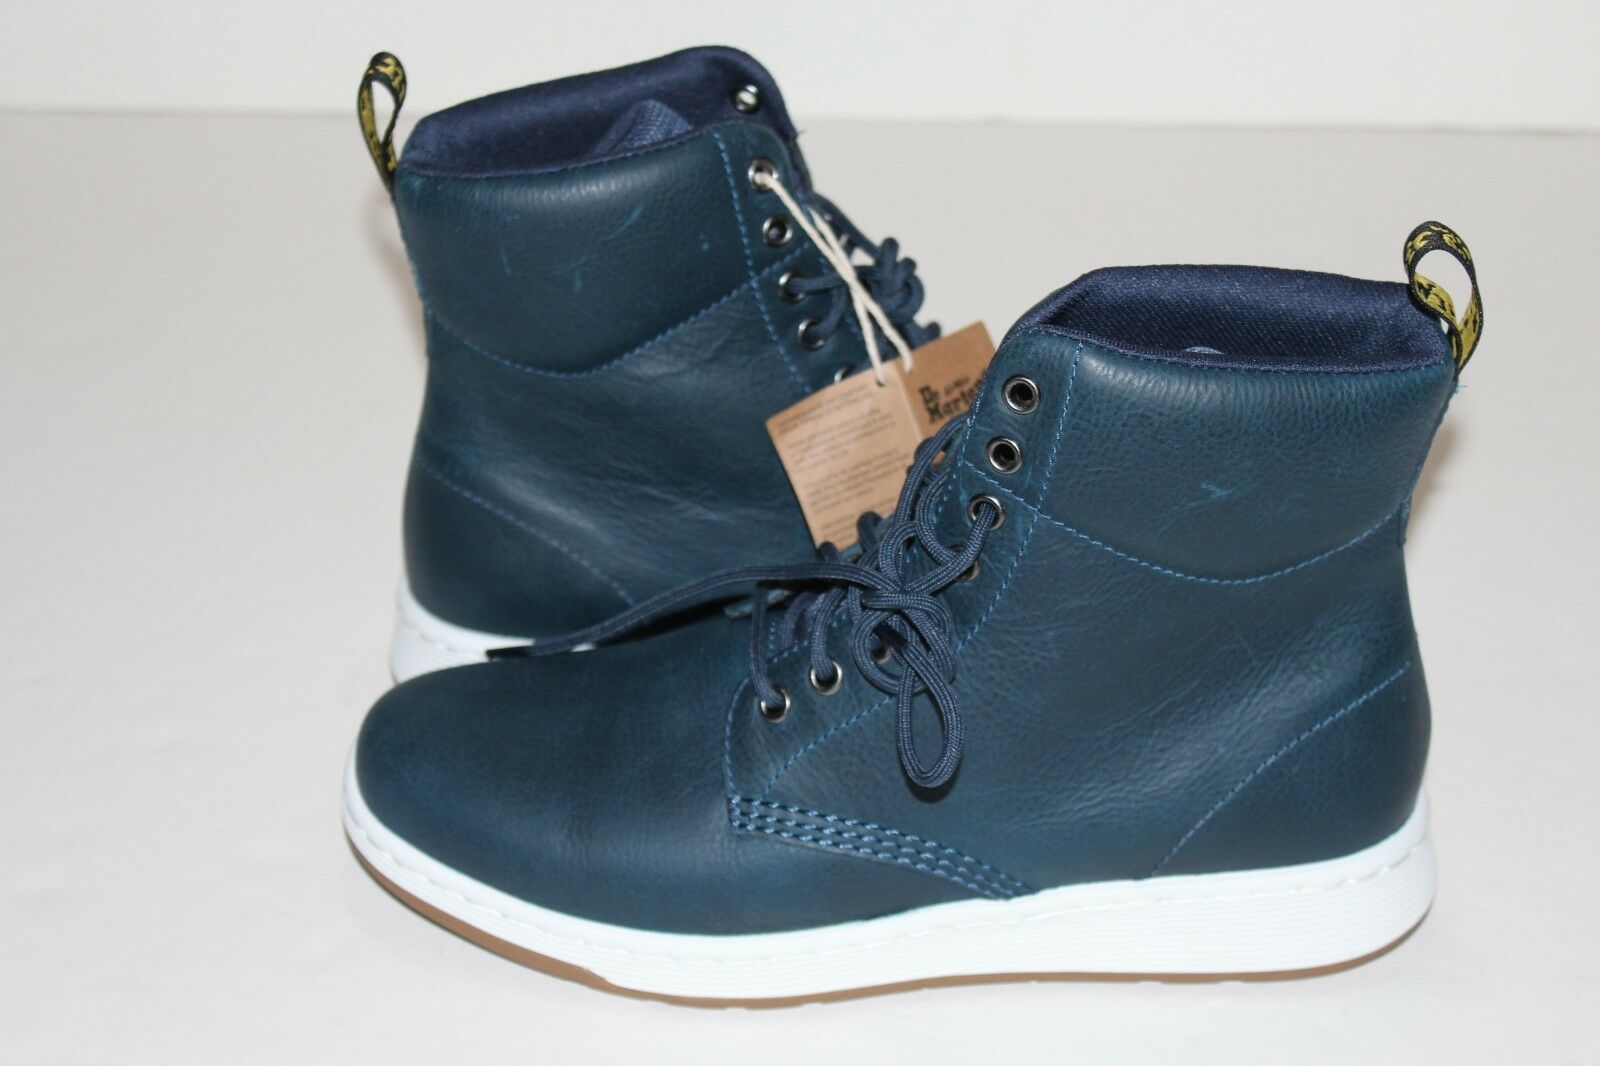 Dr. Martens Airwair Softwair Comfort Footed Men's Boots.